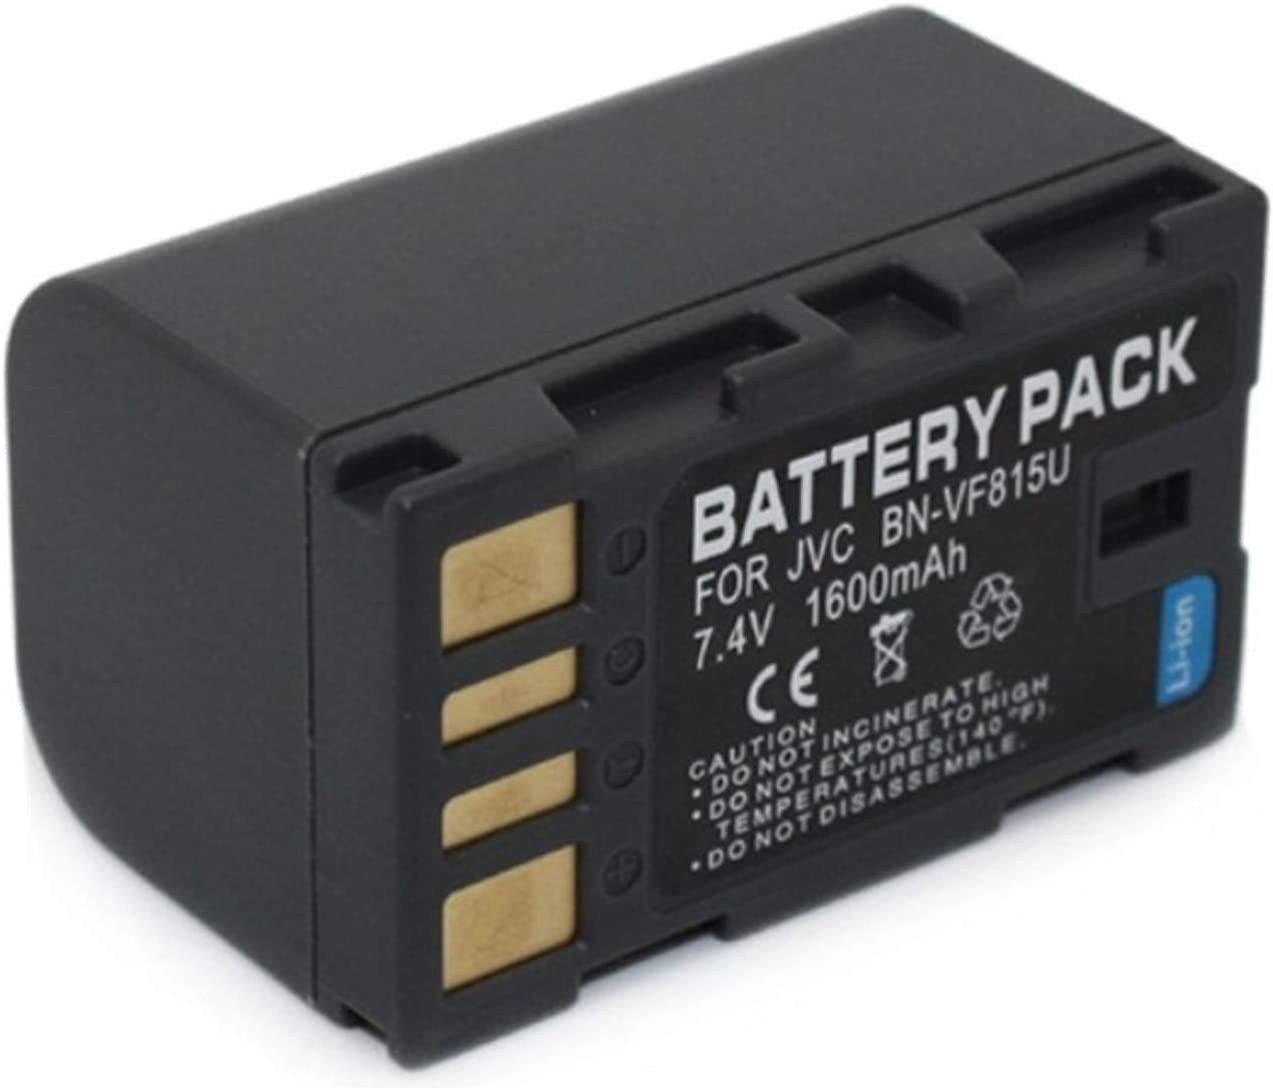 GZ-MG330HU GZ-MG365BUS Camcorder GZ-MG360BUS BN-VF823U Battery Pack for JVC Everio GZ-MG330AU GZ-MG330HUS GZ-MG330RU GZ-MG360BU GZ-MG330RUS GZ-MG330AUS GZ-MG365BU